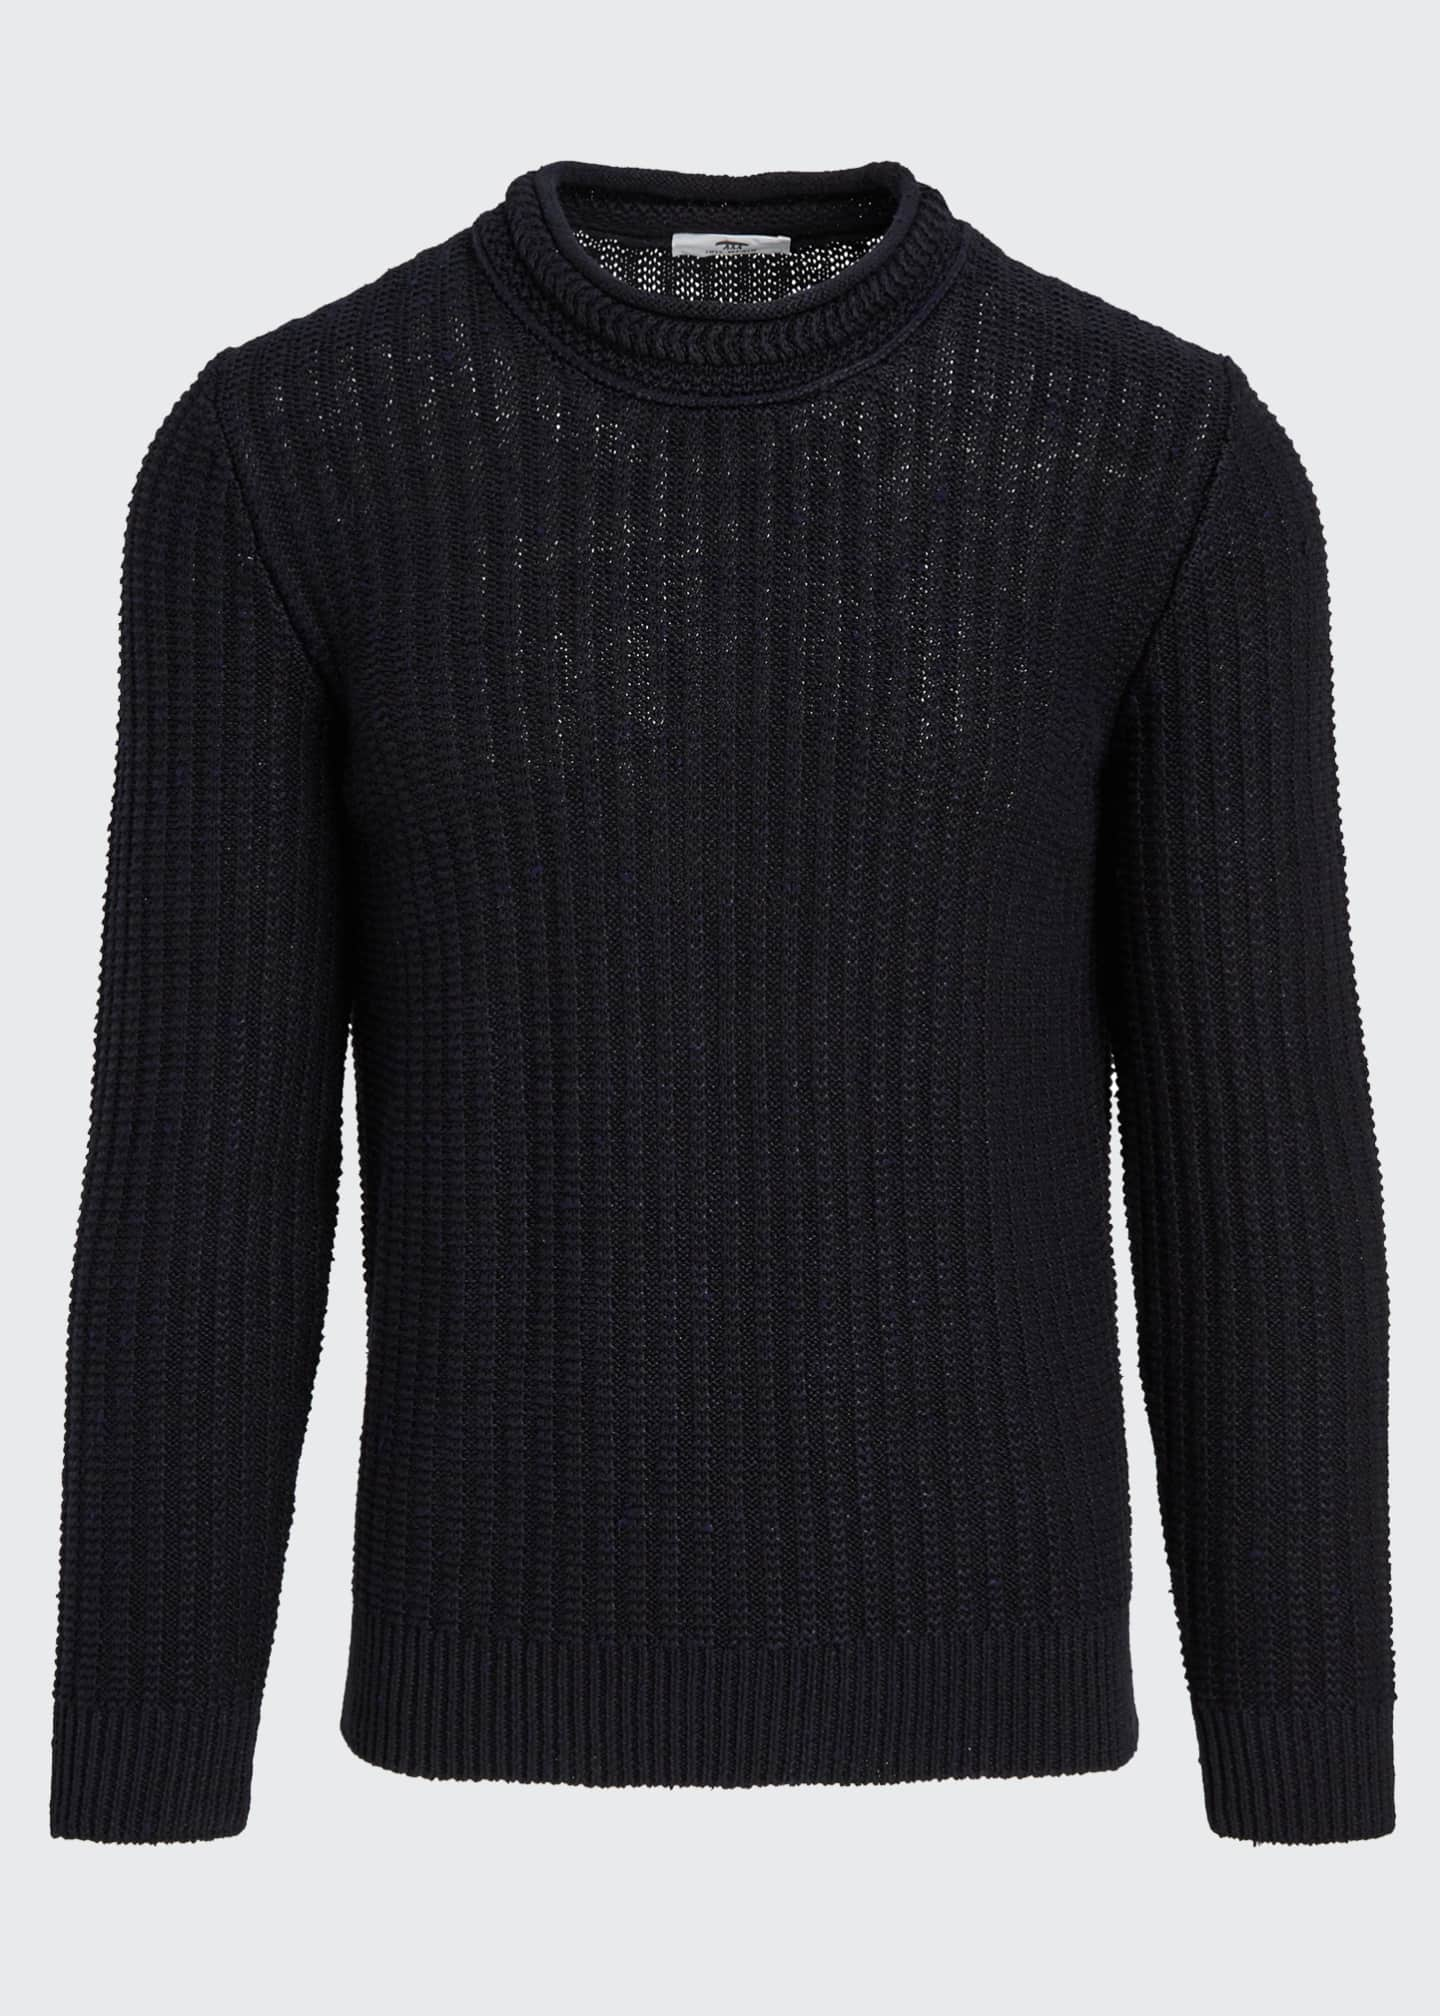 Image 5 of 5: Men's Ribbed-Knit Pullover Sweater